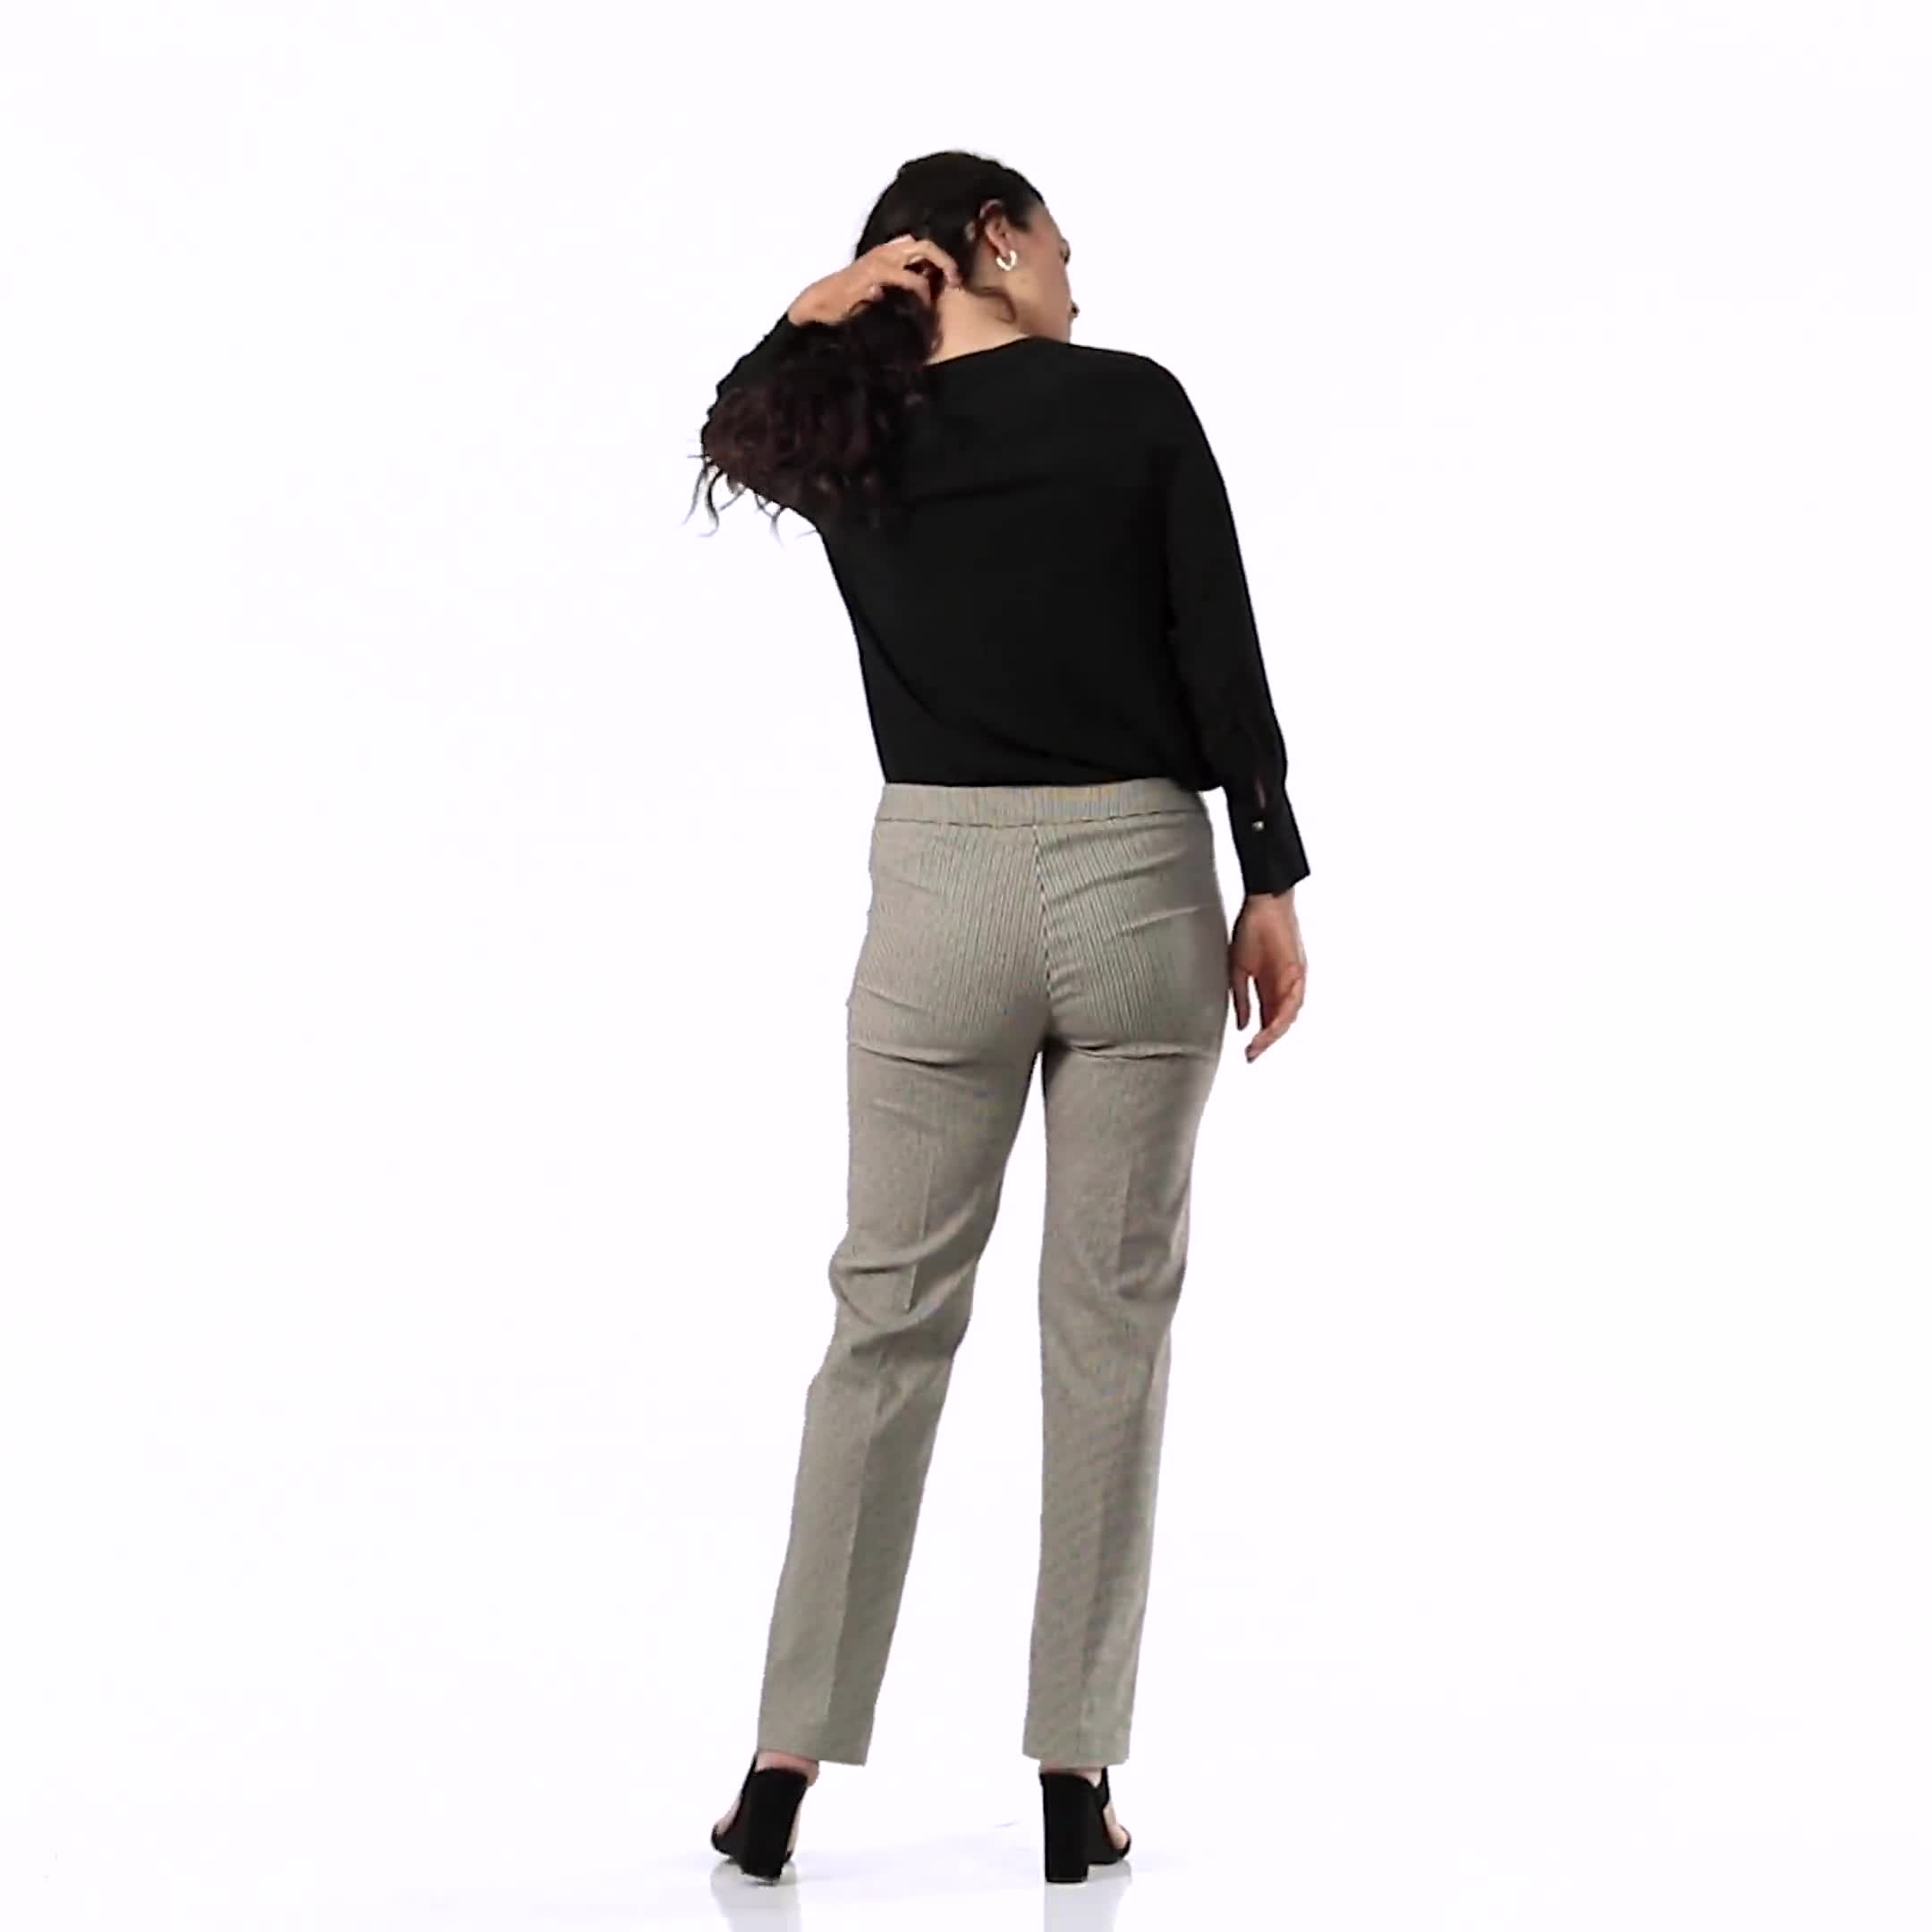 Pull On Novelty Jacquard Pant with Zipper Pockets - Video